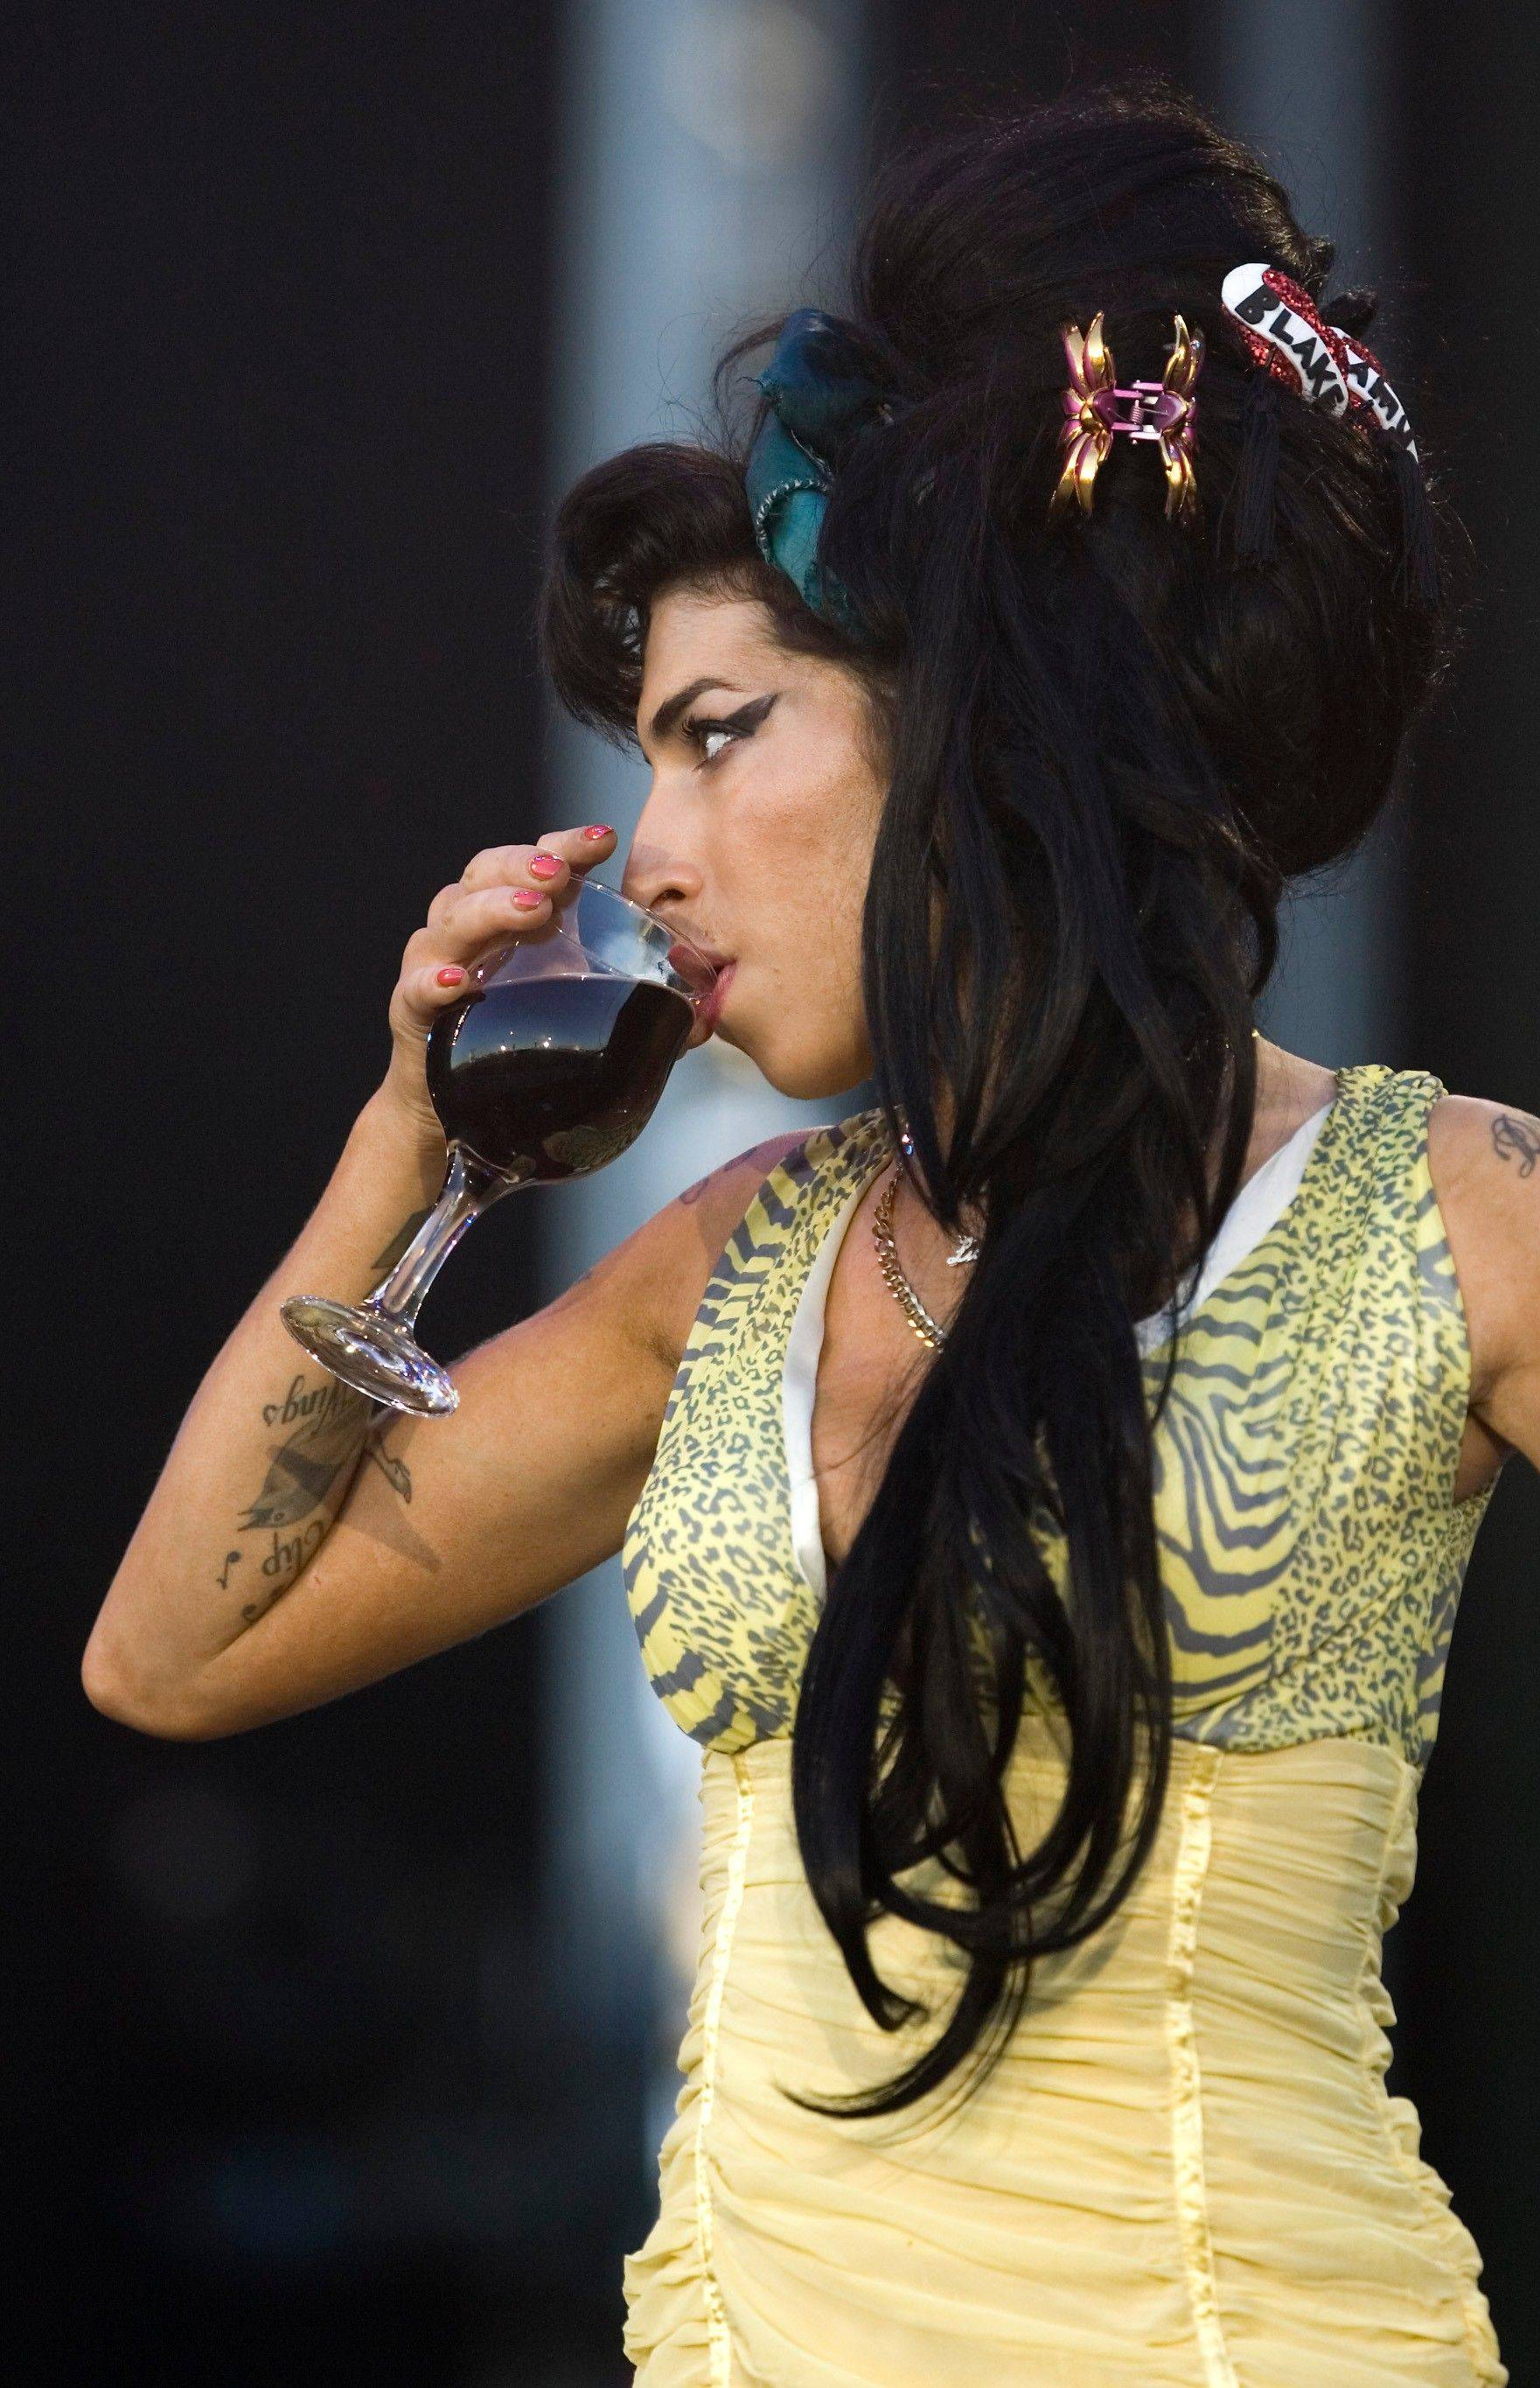 Amy Winehouse performs during the Rock in Rio music festival in Arganda del Rey, on the outskirts of Madrid.